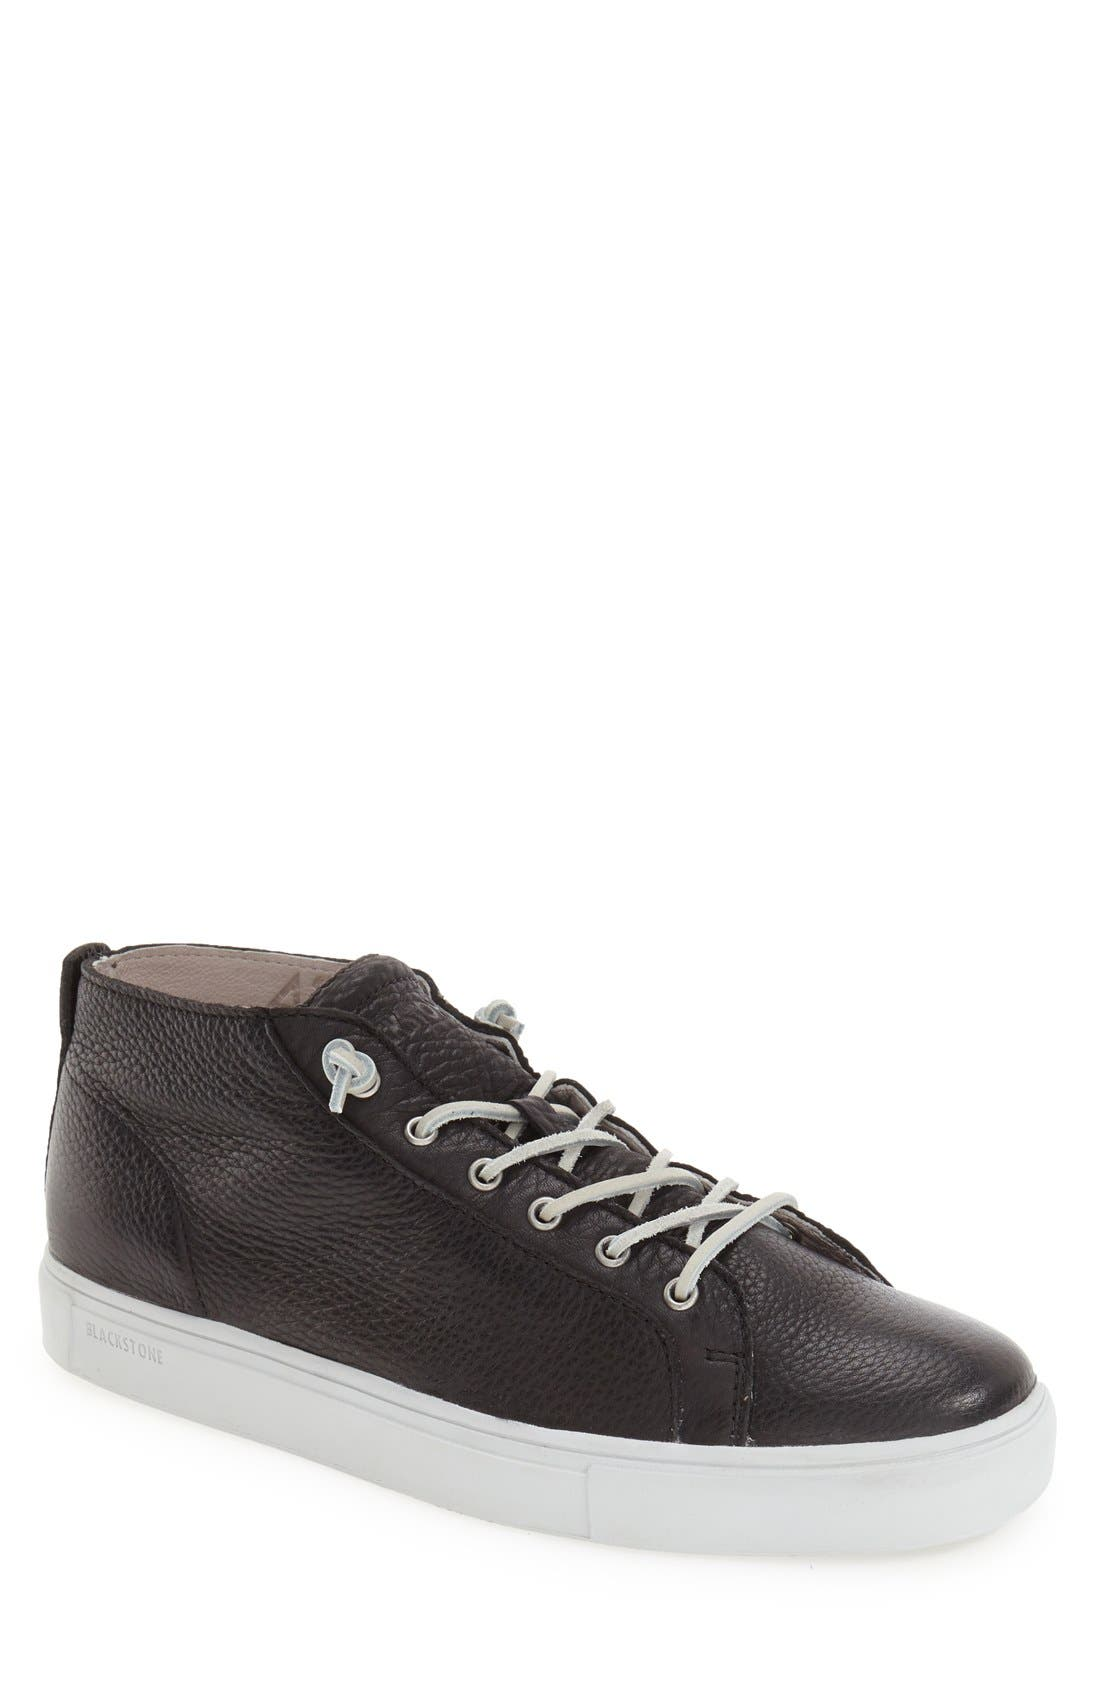 Blackstone 'LM11' Sneaker (Men). BLACK; NORDIC BLUE LEATHER